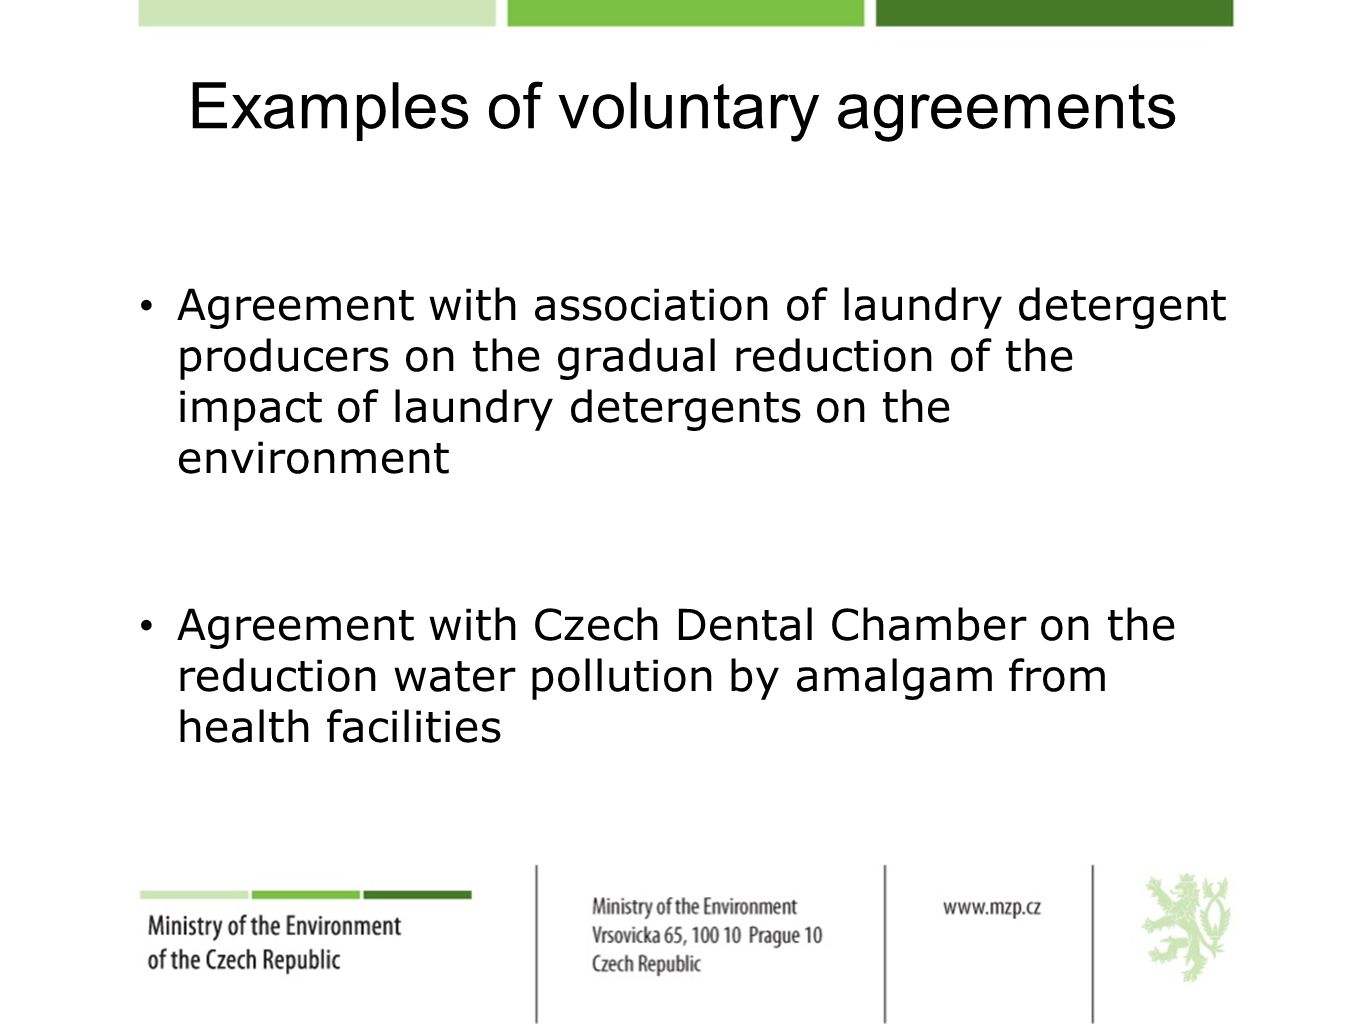 Examples of voluntary agreements Agreement with association of laundry detergent producers on the gradual reduction of the impact of laundry detergents on the environment Agreement with Czech Dental Chamber on the reduction water pollution by amalgam from health facilities